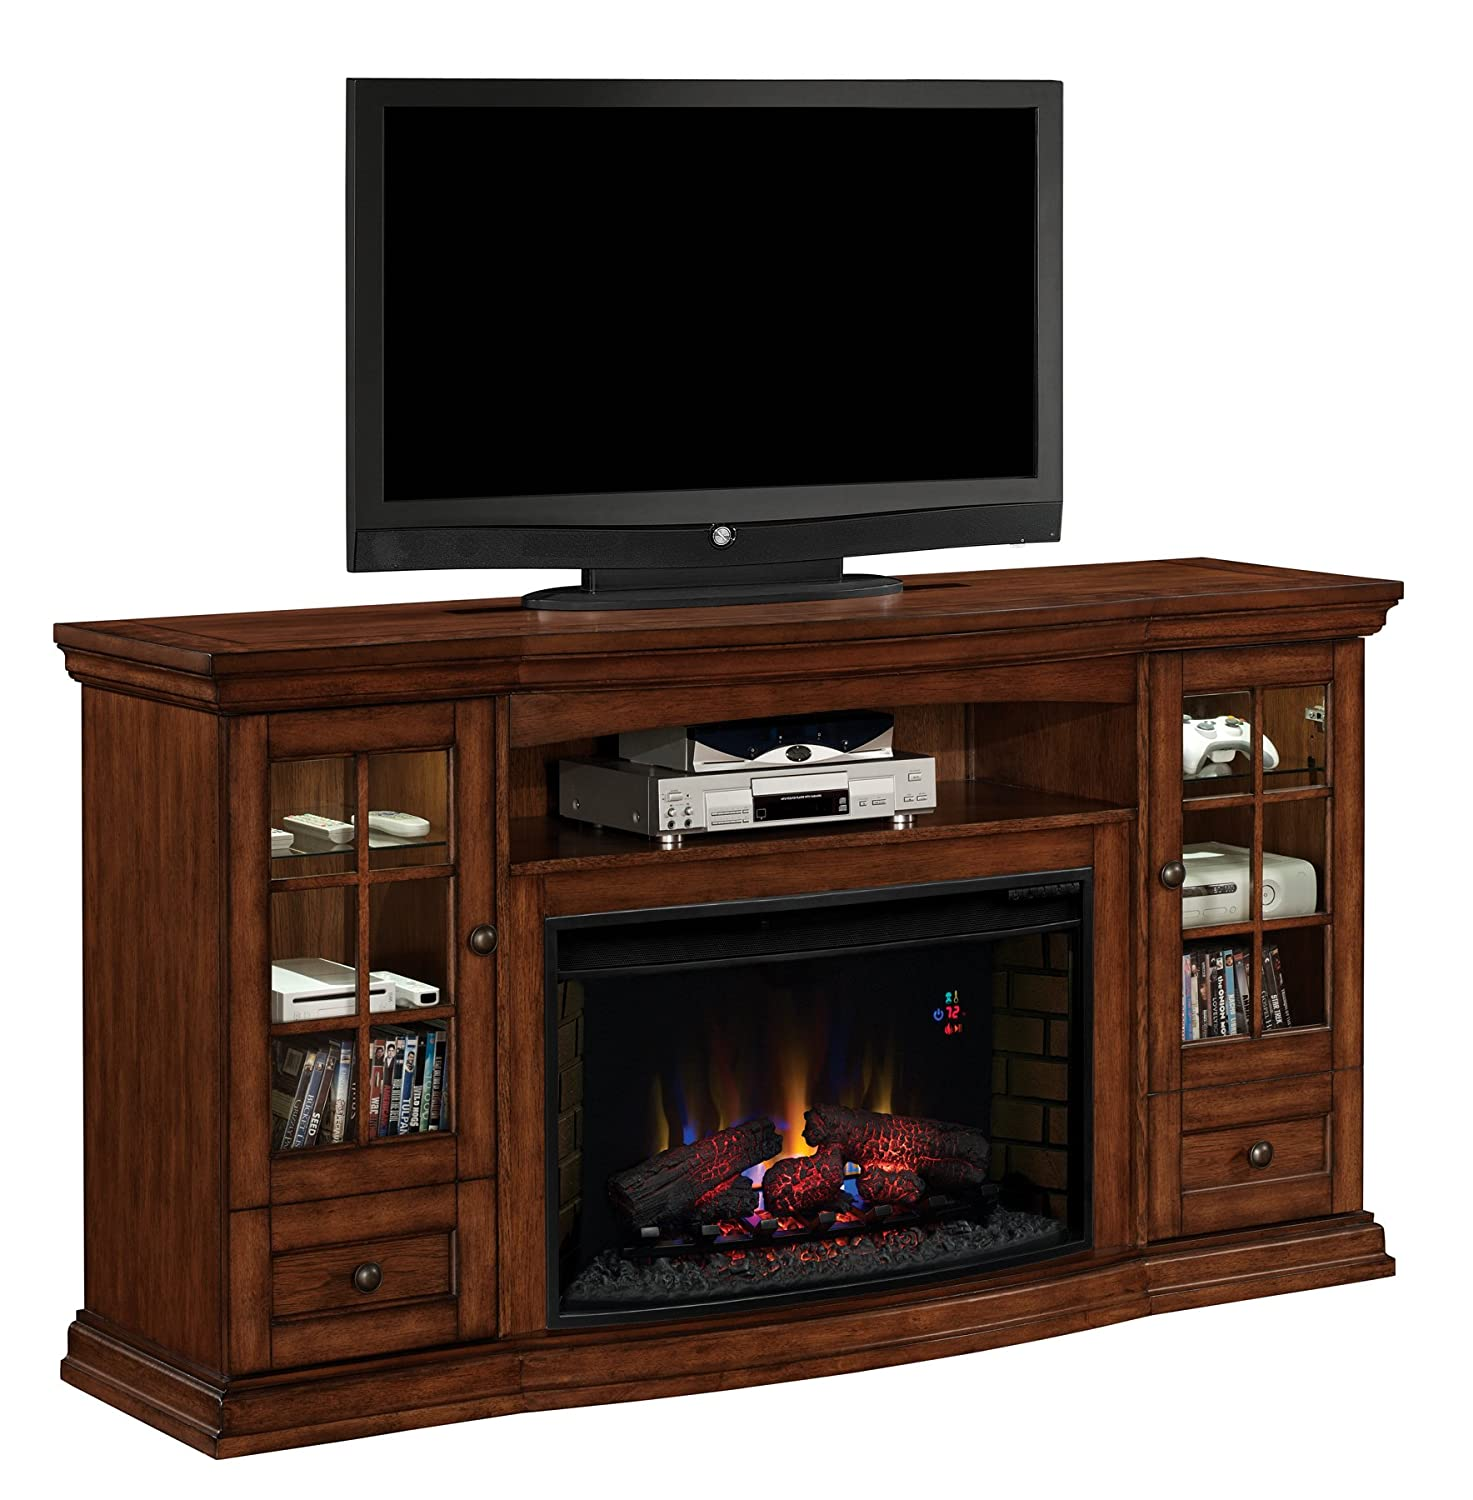 Superb Classicflame 32Mm4486 P239 Seagate Tv Stand For Tvs Up To 80 Pecan Electric Fireplace Insert Sold Separately Download Free Architecture Designs Scobabritishbridgeorg